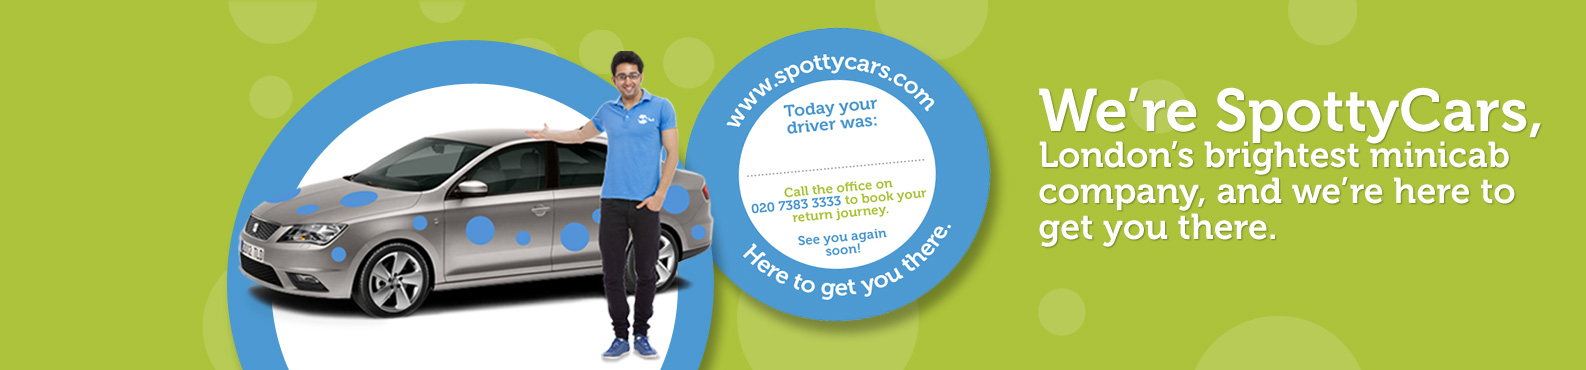 SpottyCars, Providing Family-friendly Local Minicabs In NW1, Camden